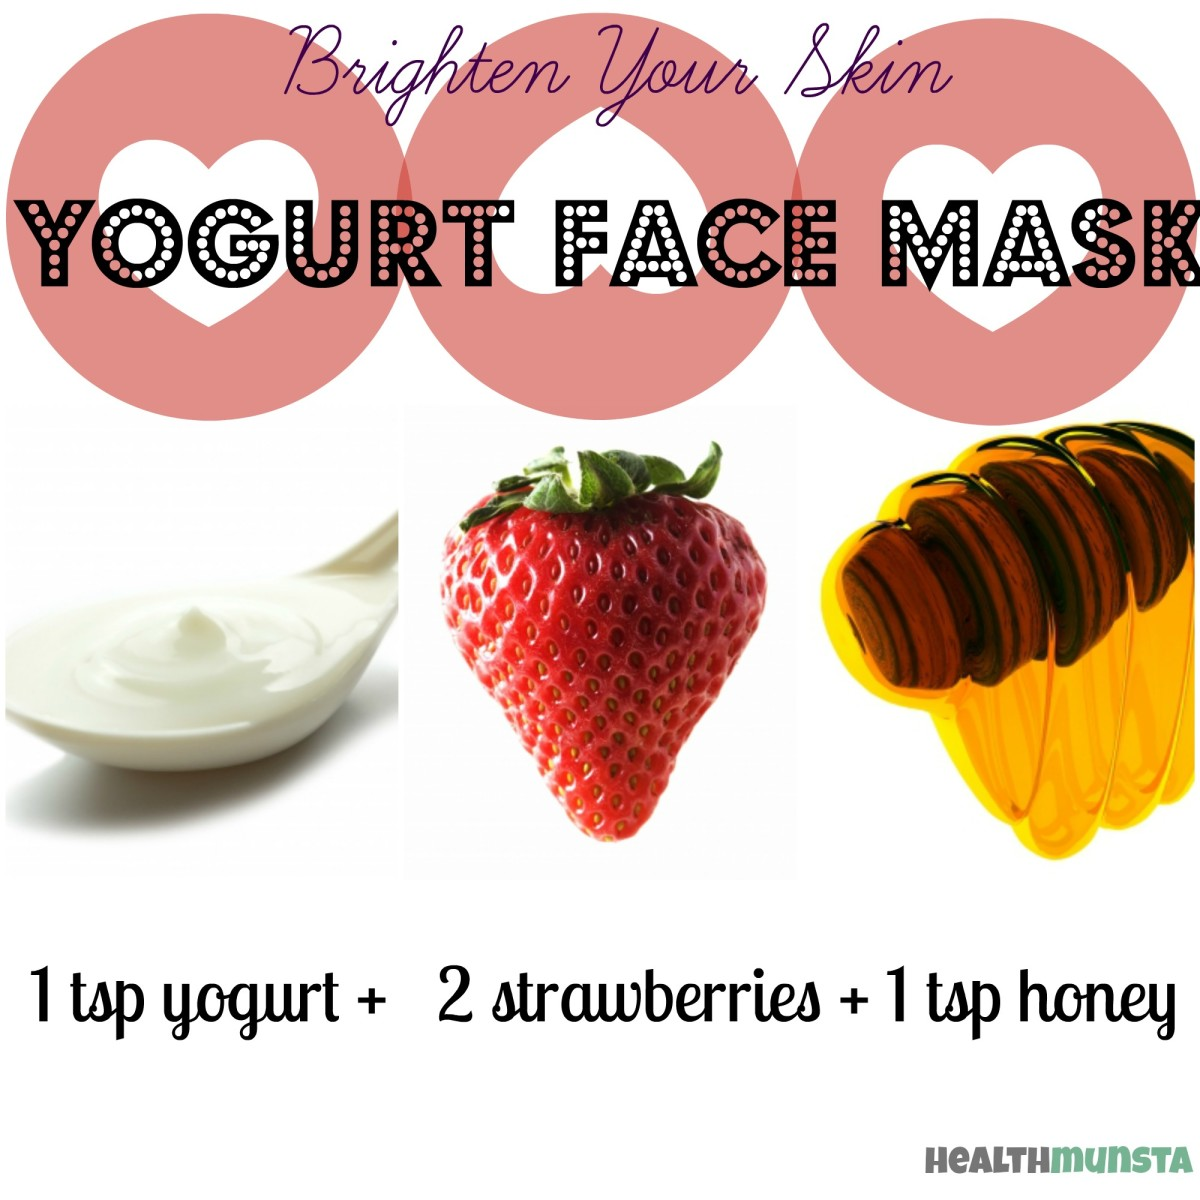 The goodness of strawberries plus yogurt and honey, gives an awesome skin brightening face mask.